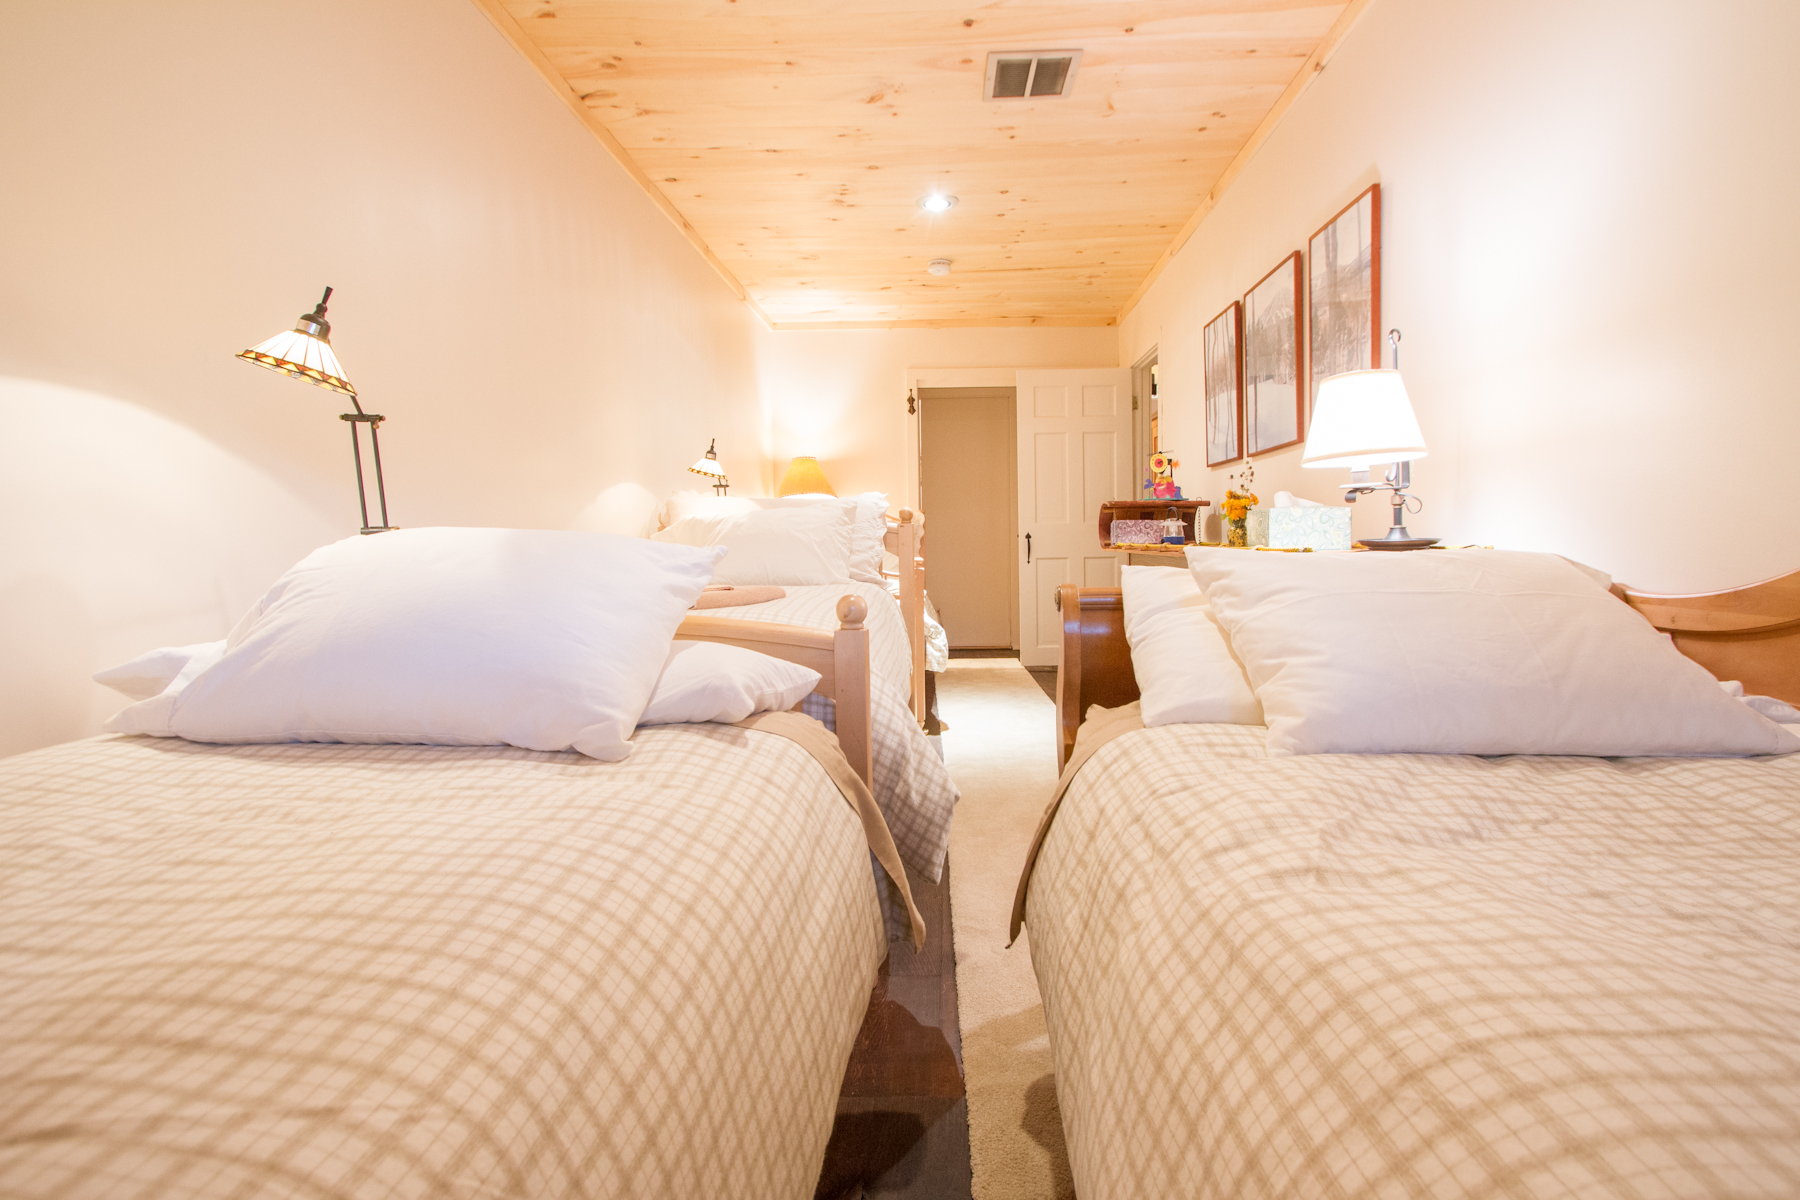 Warrior III Room (Book Private or Share) - 4 Twin Bed